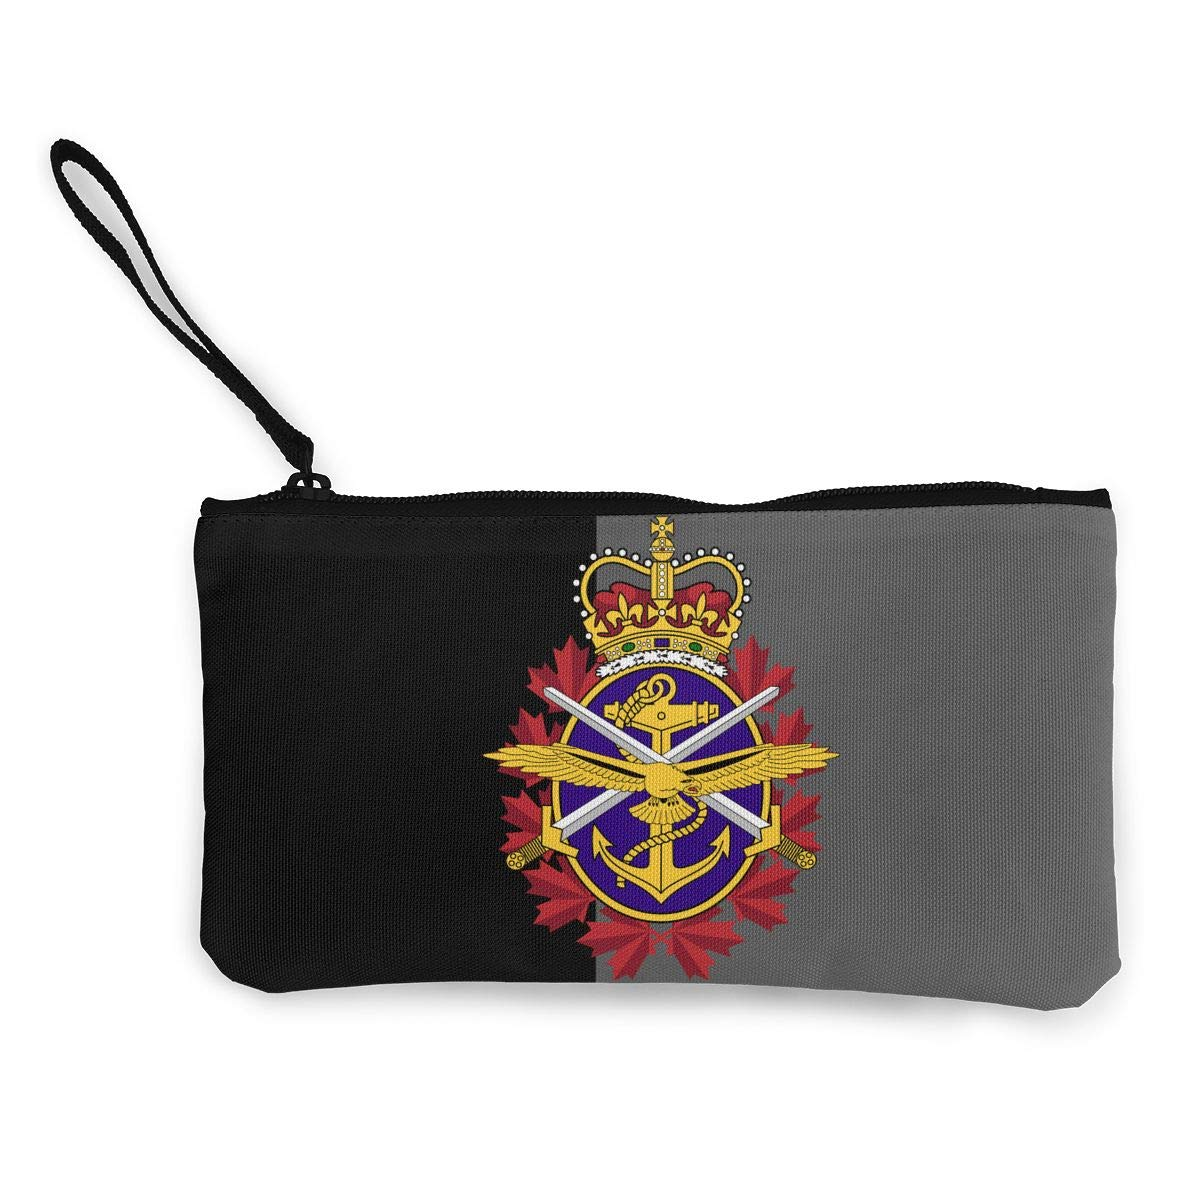 Canadian Armed Forces Unisex Canvas Coin Purse Wallet Coin Purse Canvas Zipper Wallet